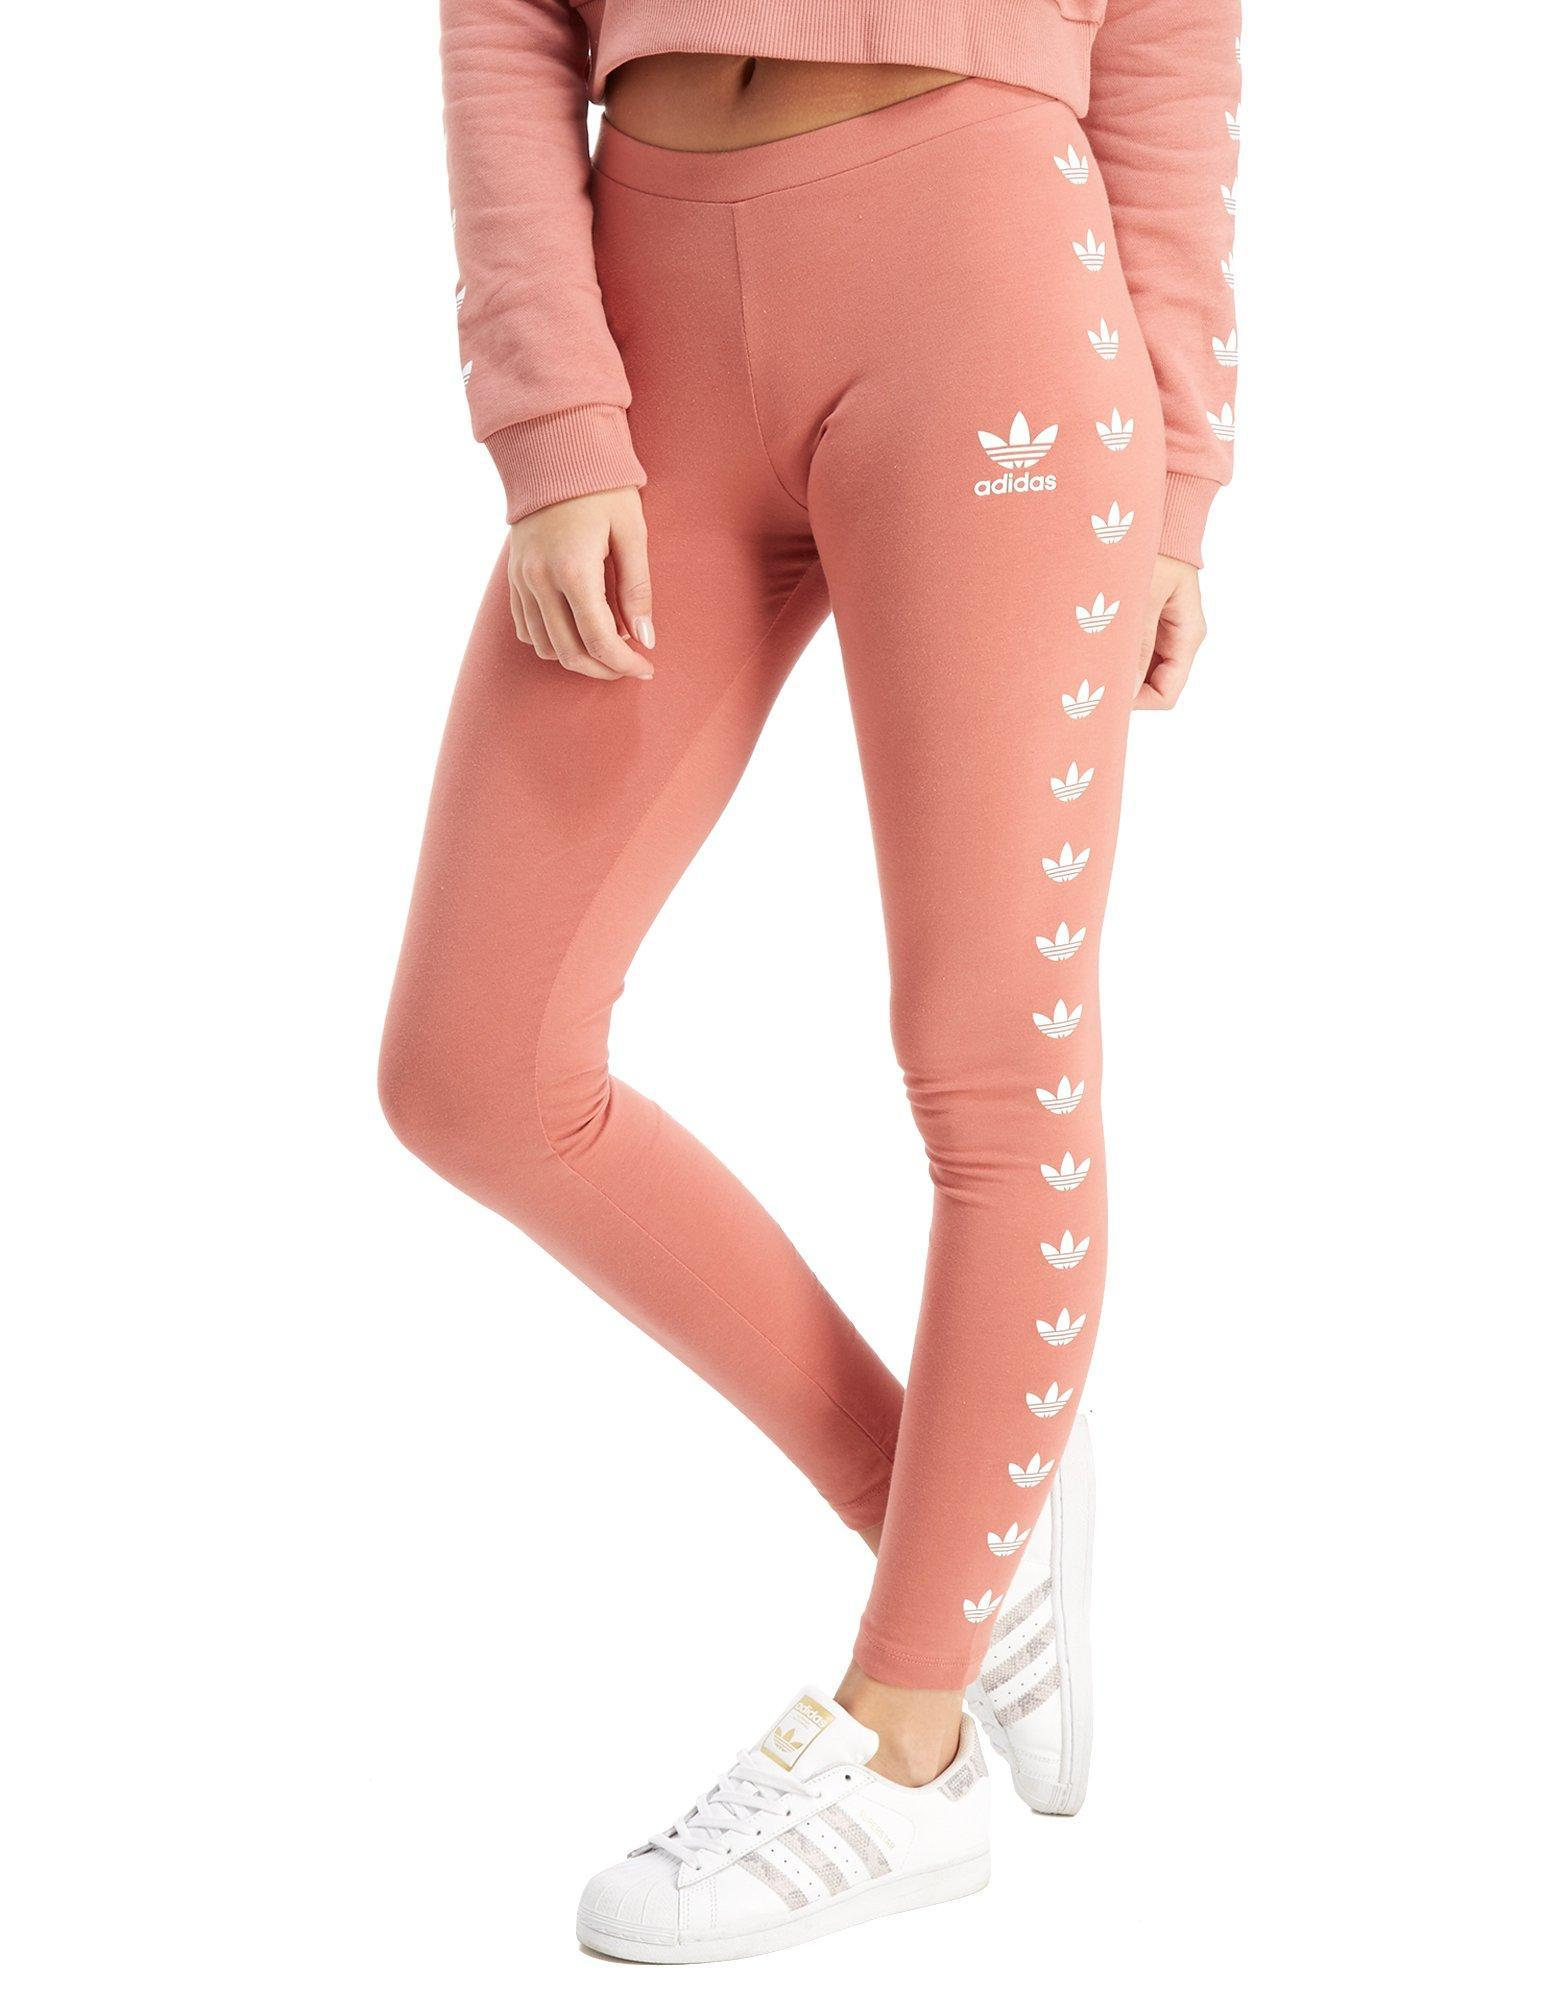 e83518a49dd17 adidas Originals Leggings in Pink - Lyst